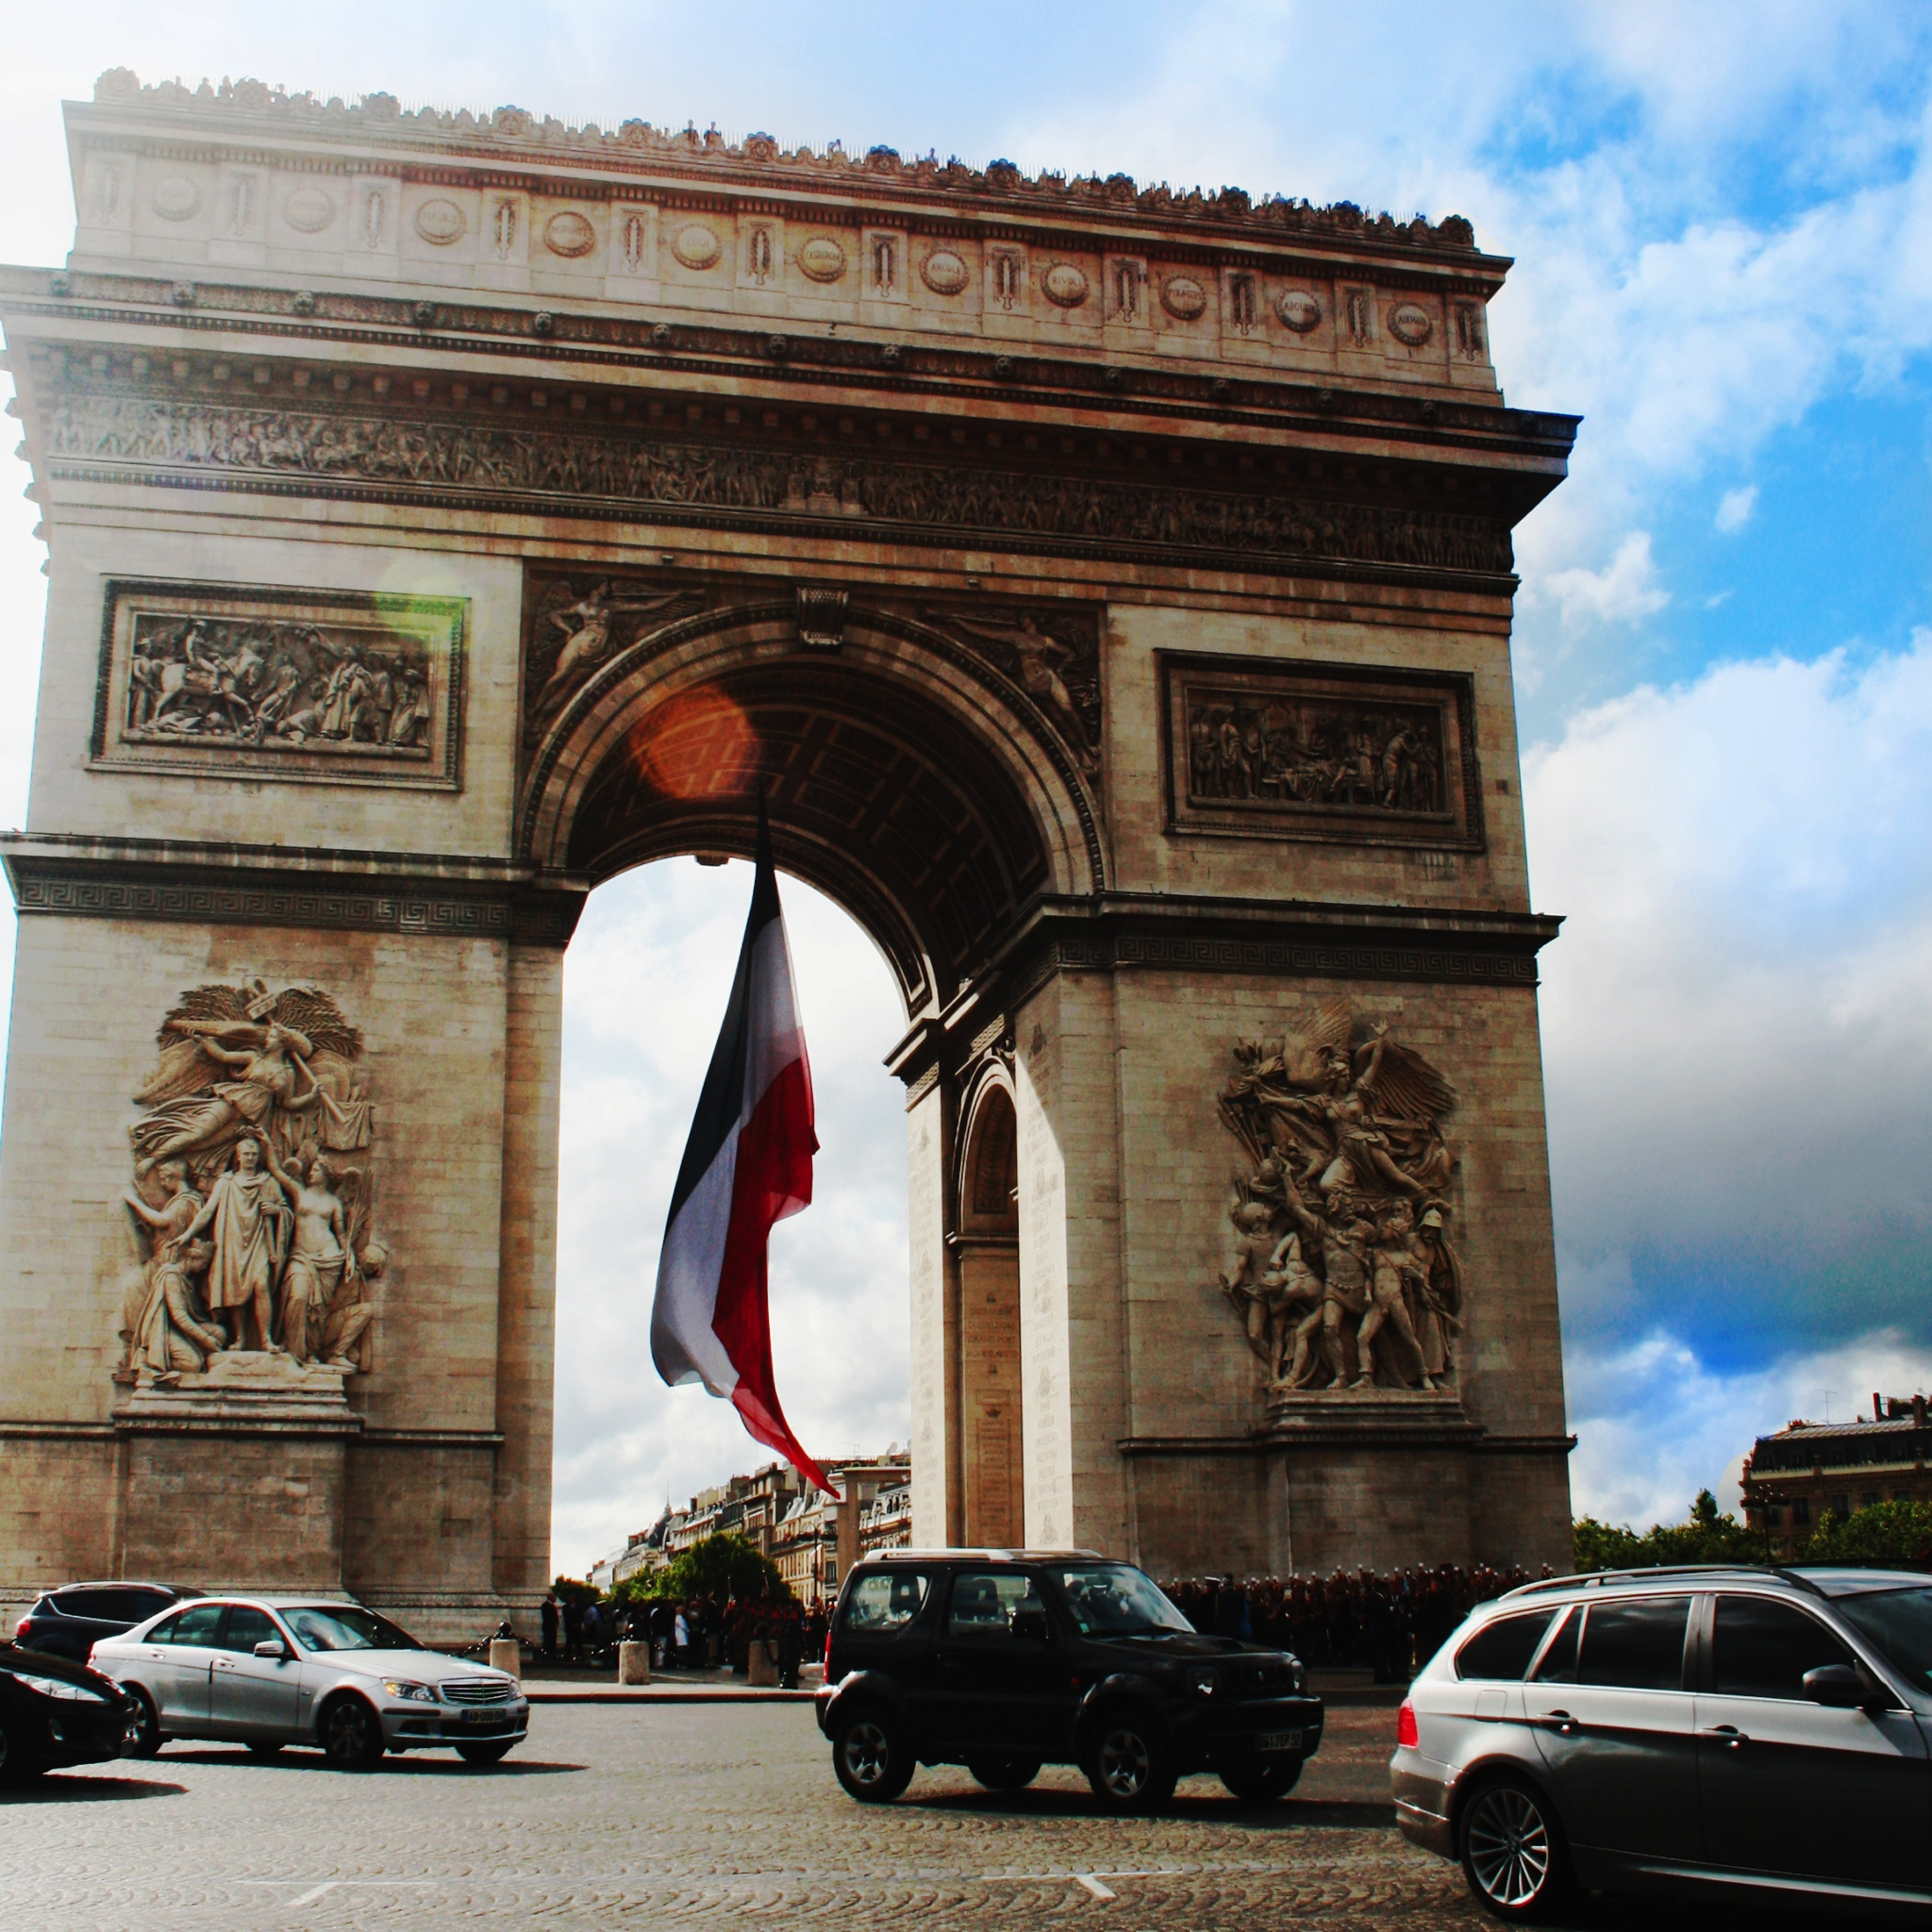 Arc de Triomphe - iPad Wallpaper for iPhone X, 8, 7, 6 - Free ...